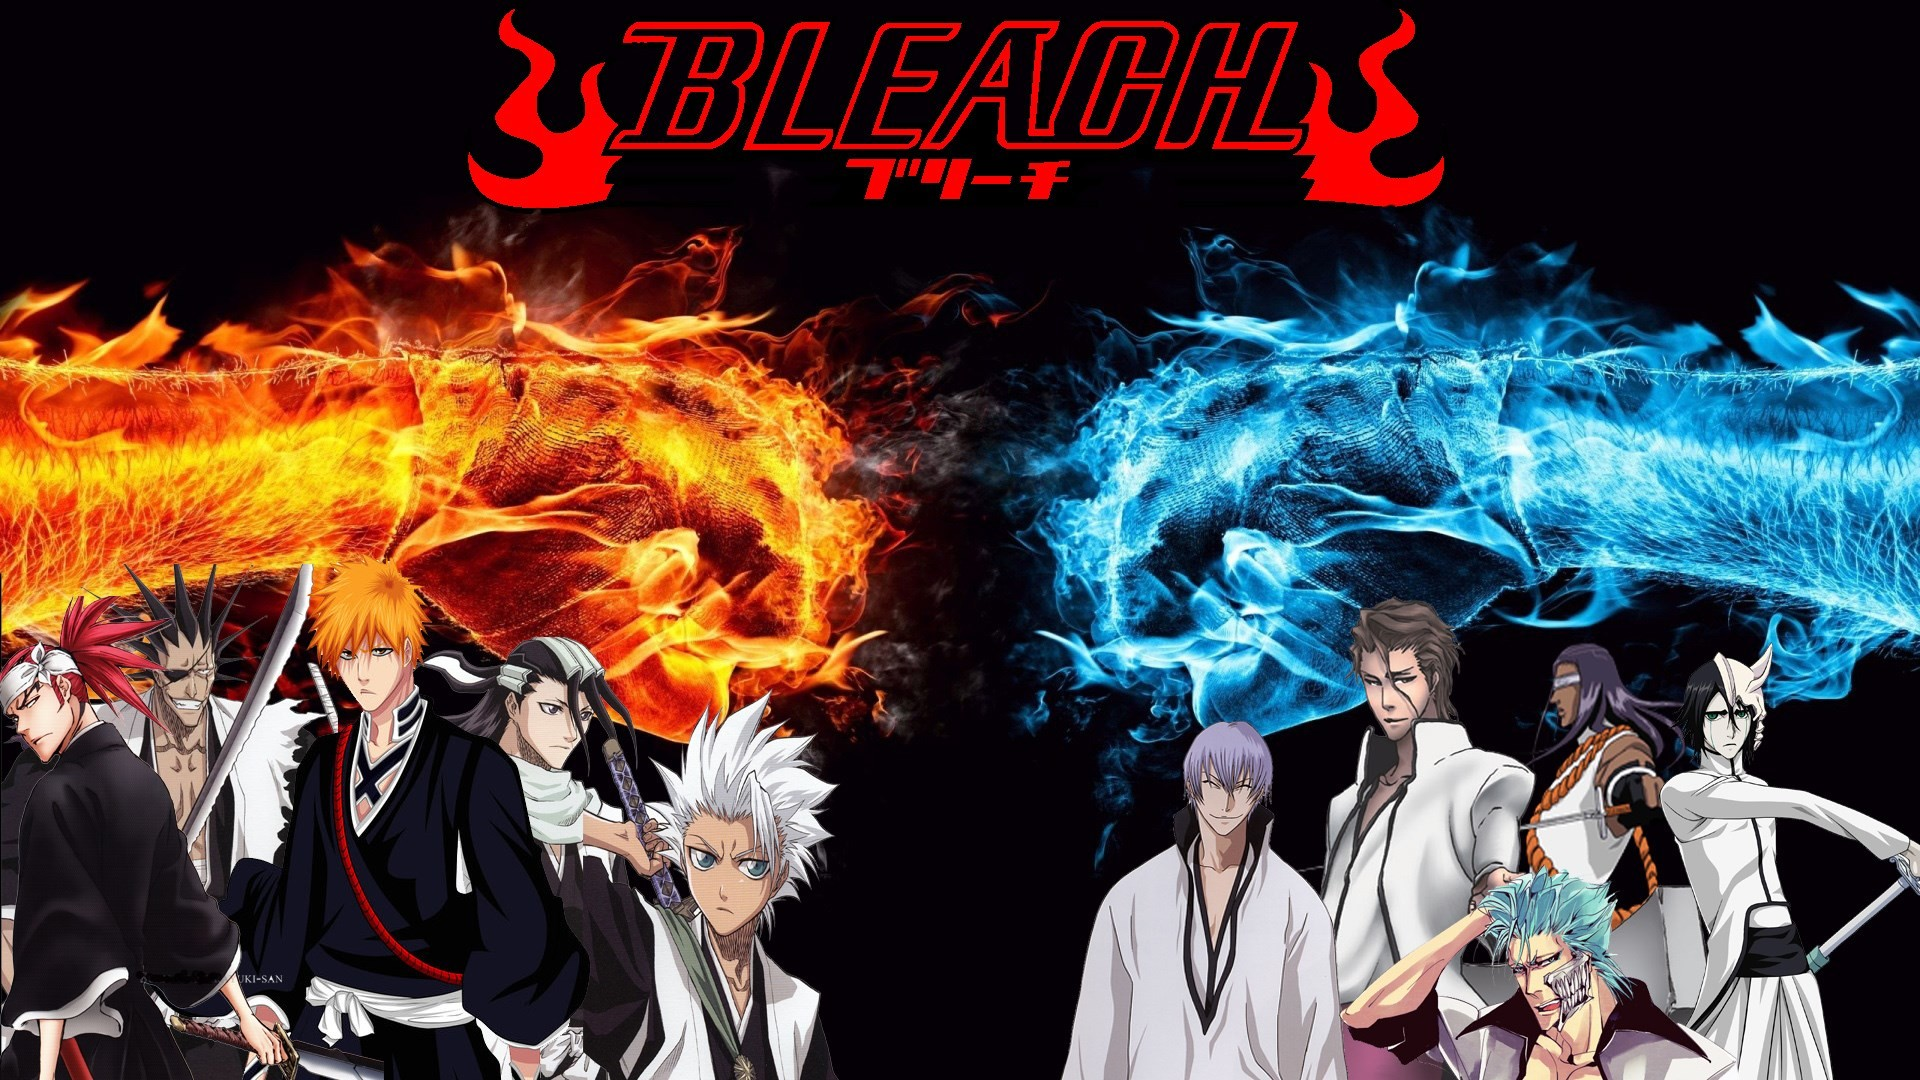 1920x1080 bleach desktop wallpaper